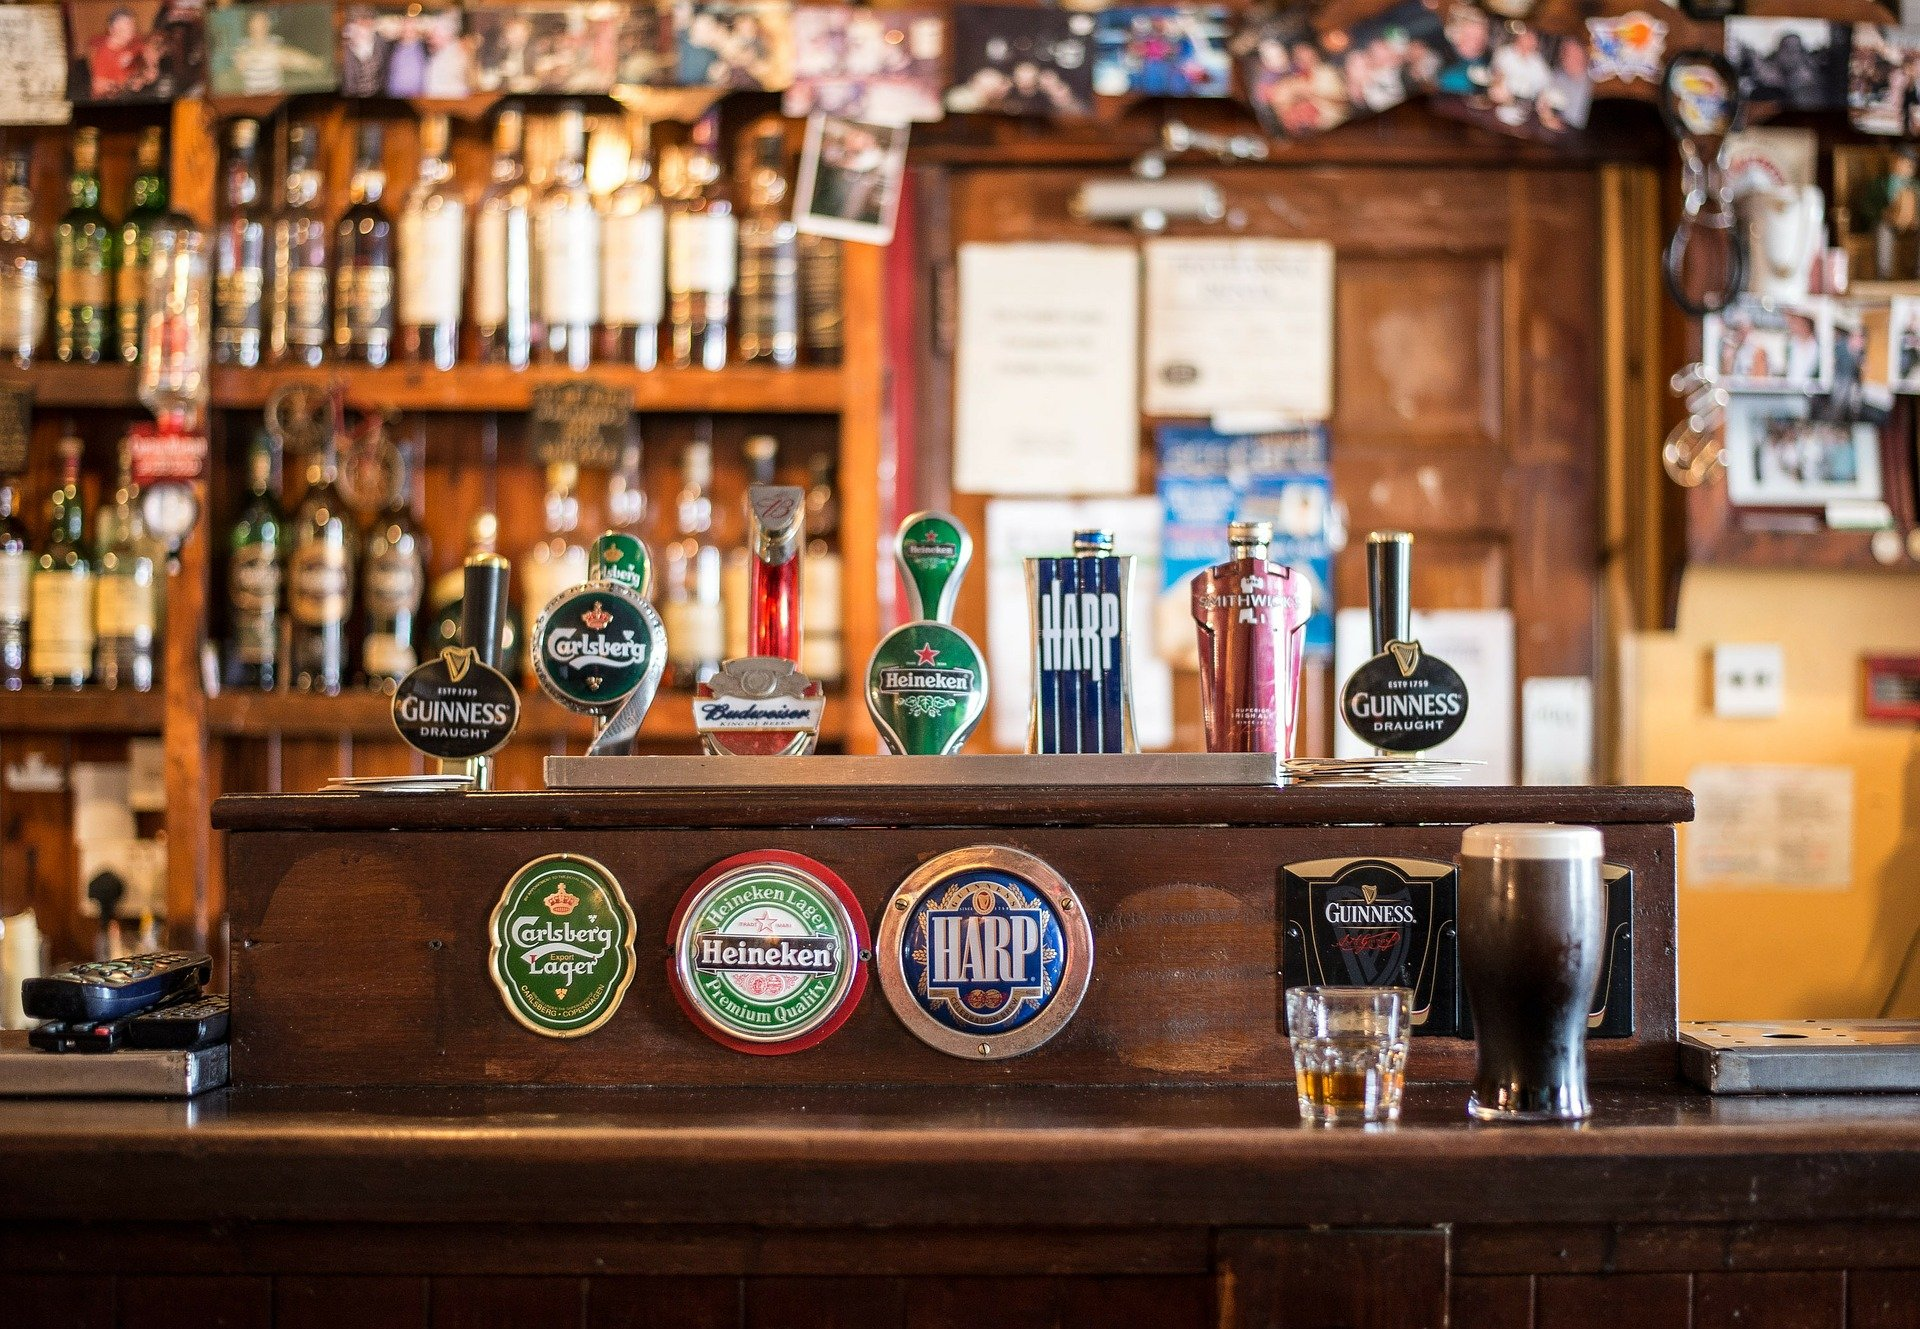 An Irish bar set-up with some beers on tap   Photo: Pixabay/Christian_Birkholz